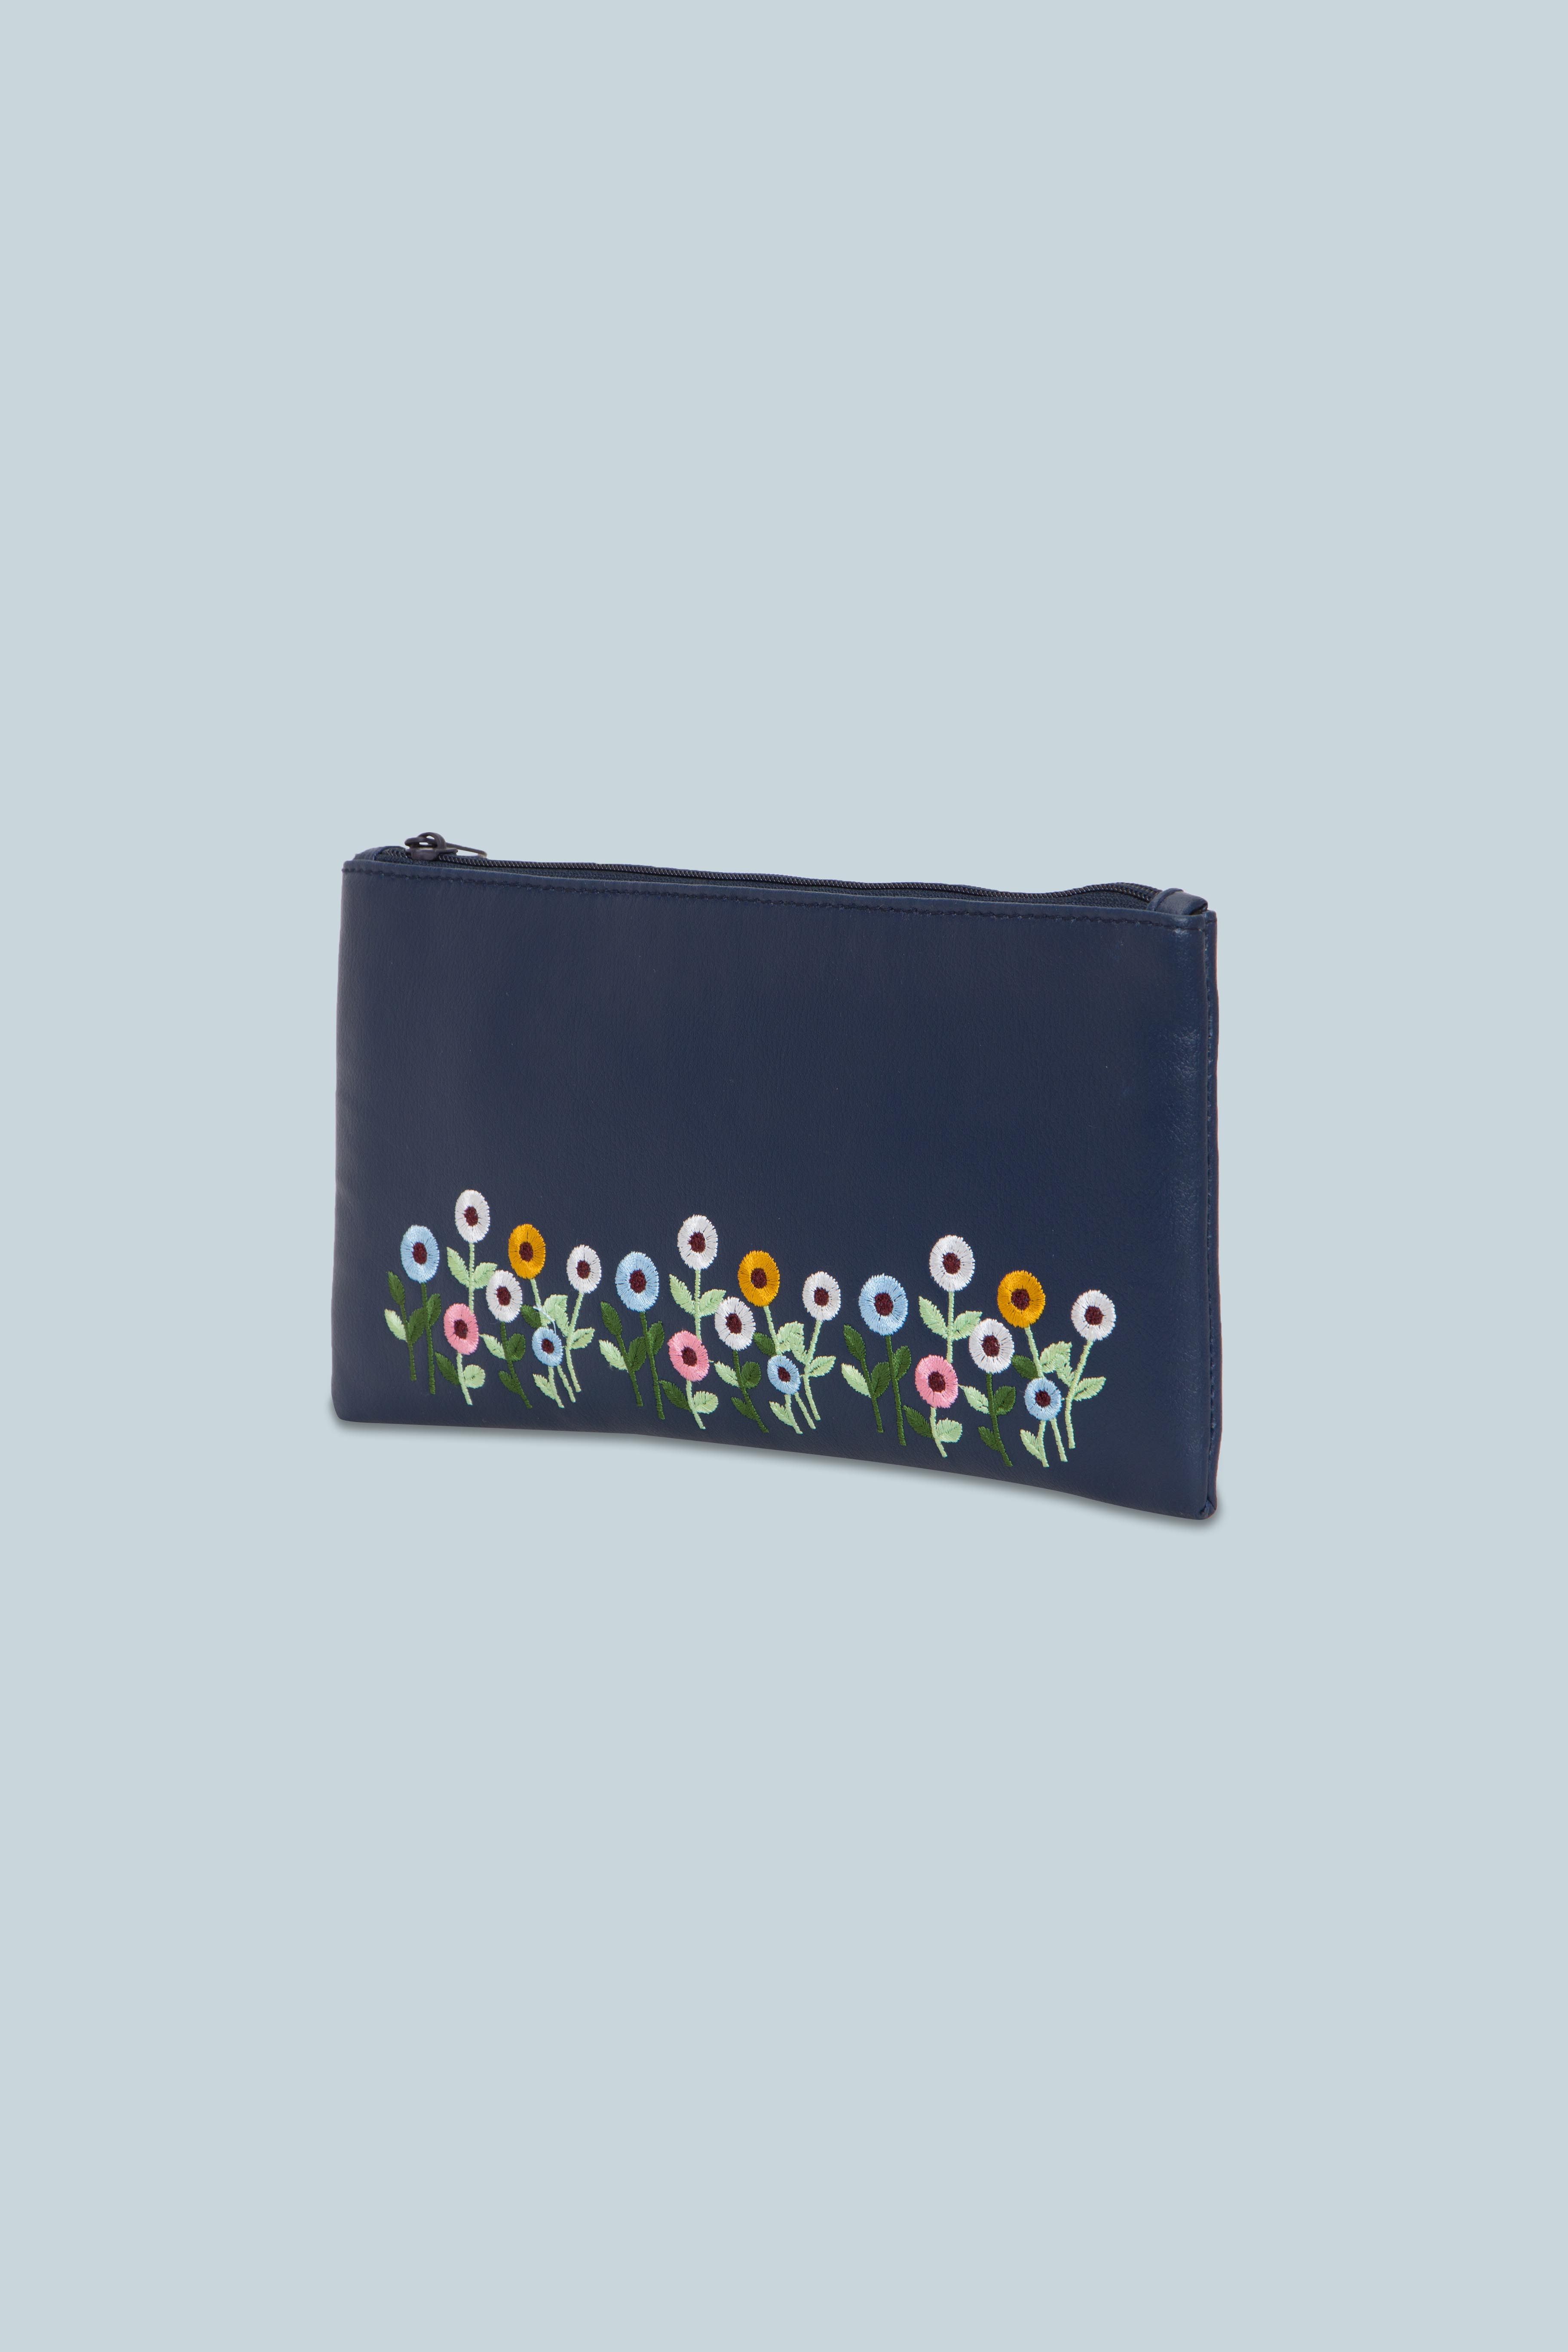 Folle Embroidery Blue Clutch